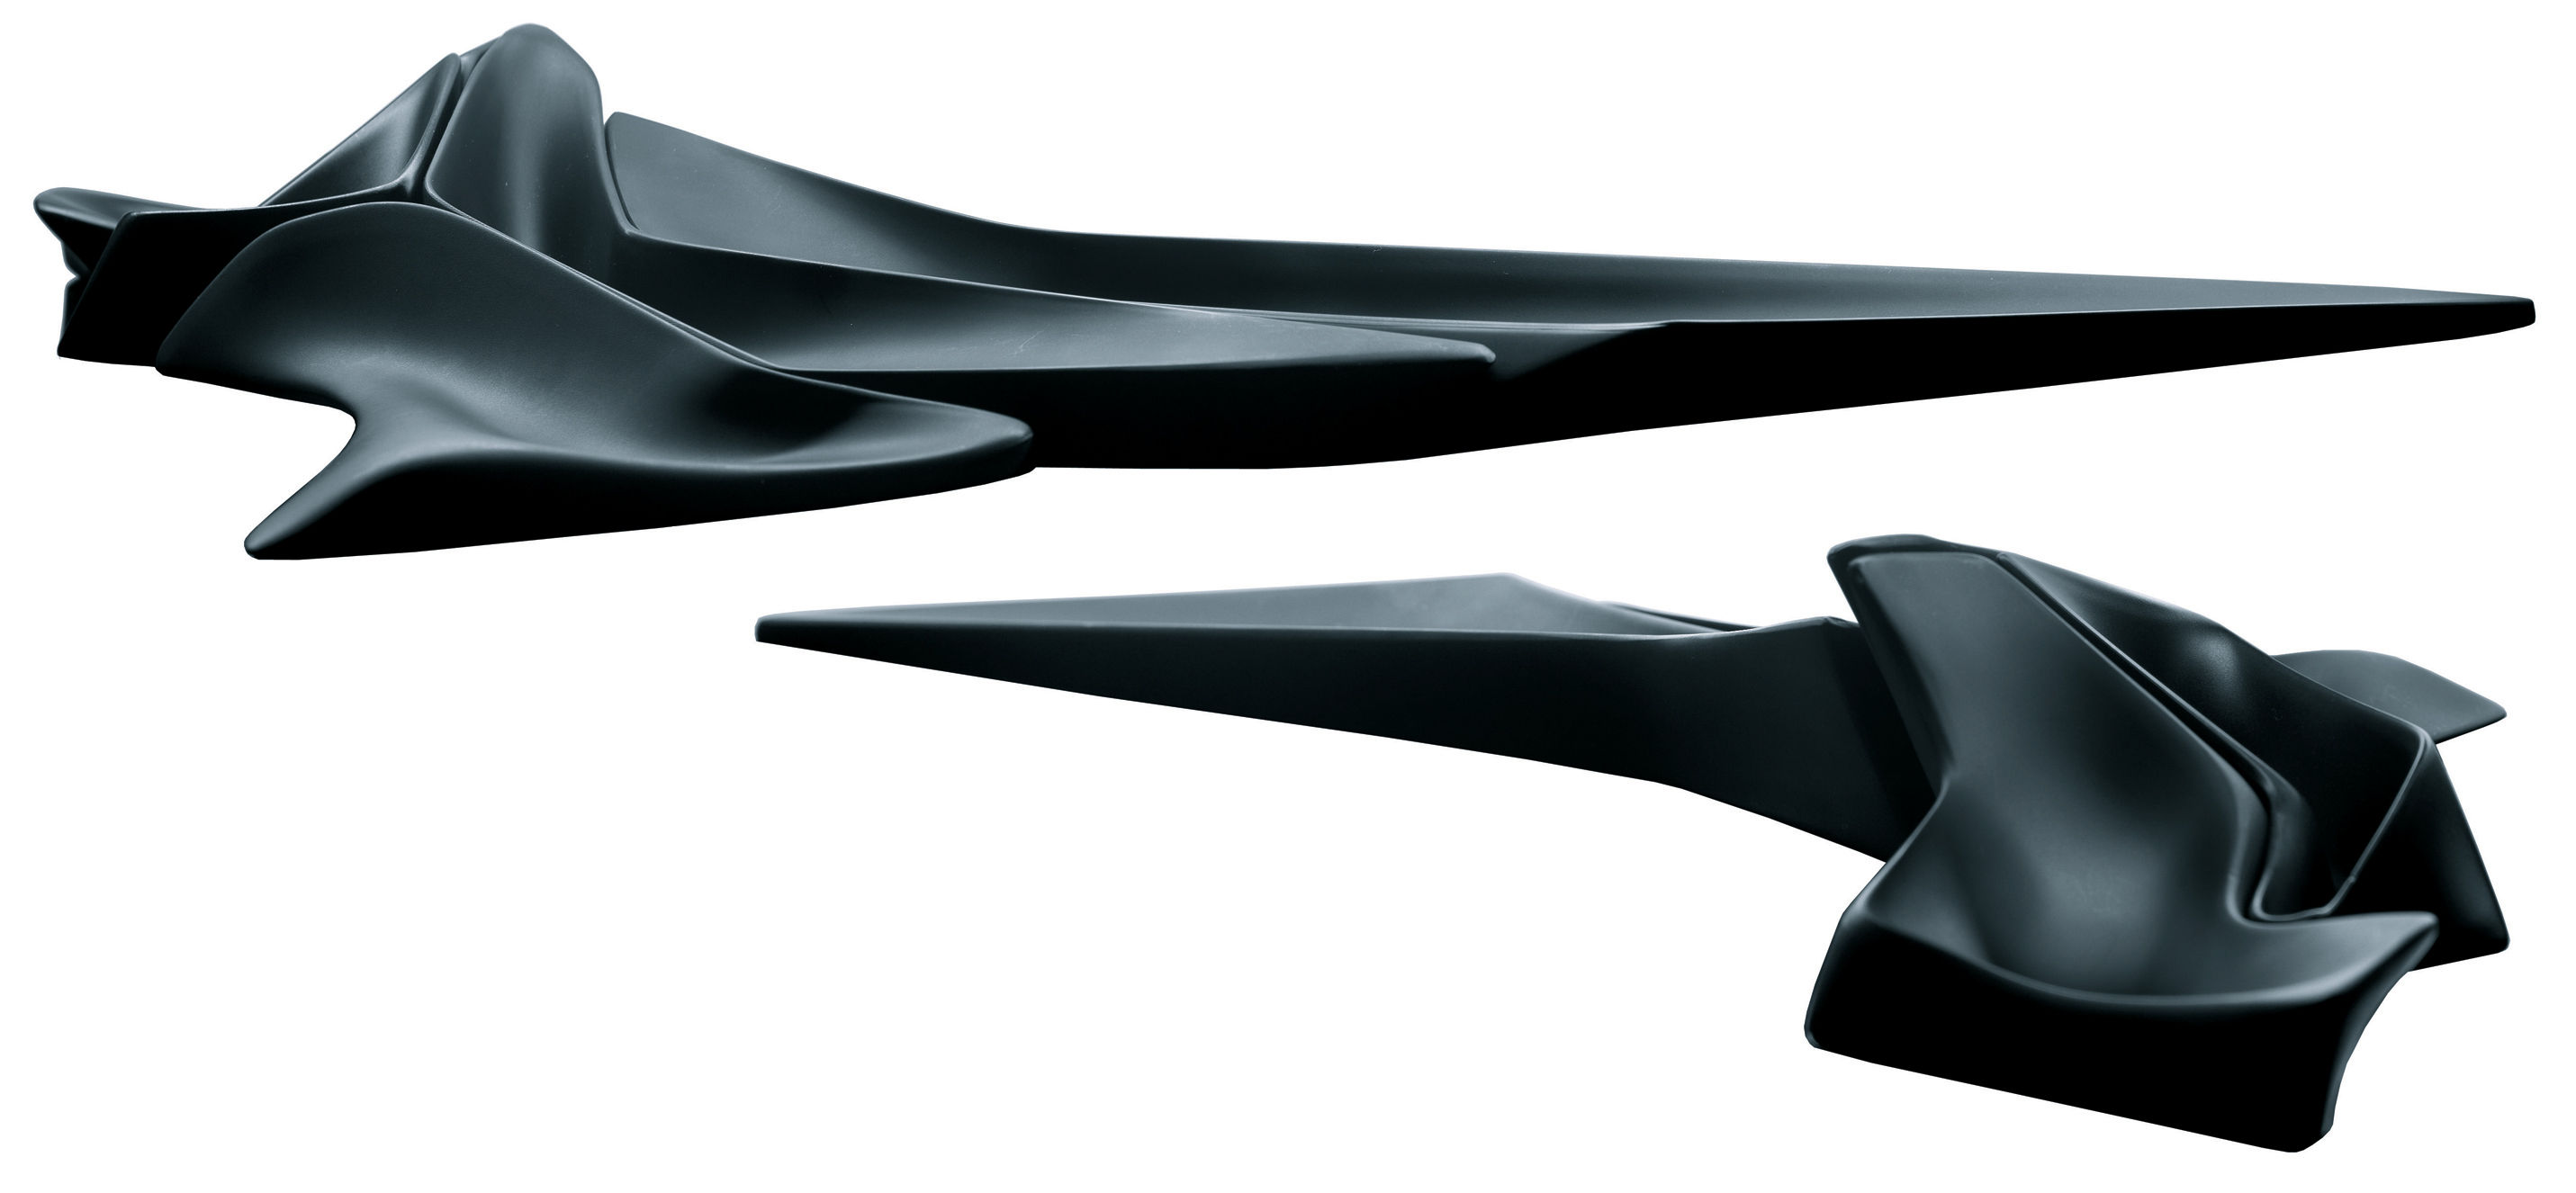 centre de table niche modulable l 60 cm noir alessi made in design. Black Bedroom Furniture Sets. Home Design Ideas